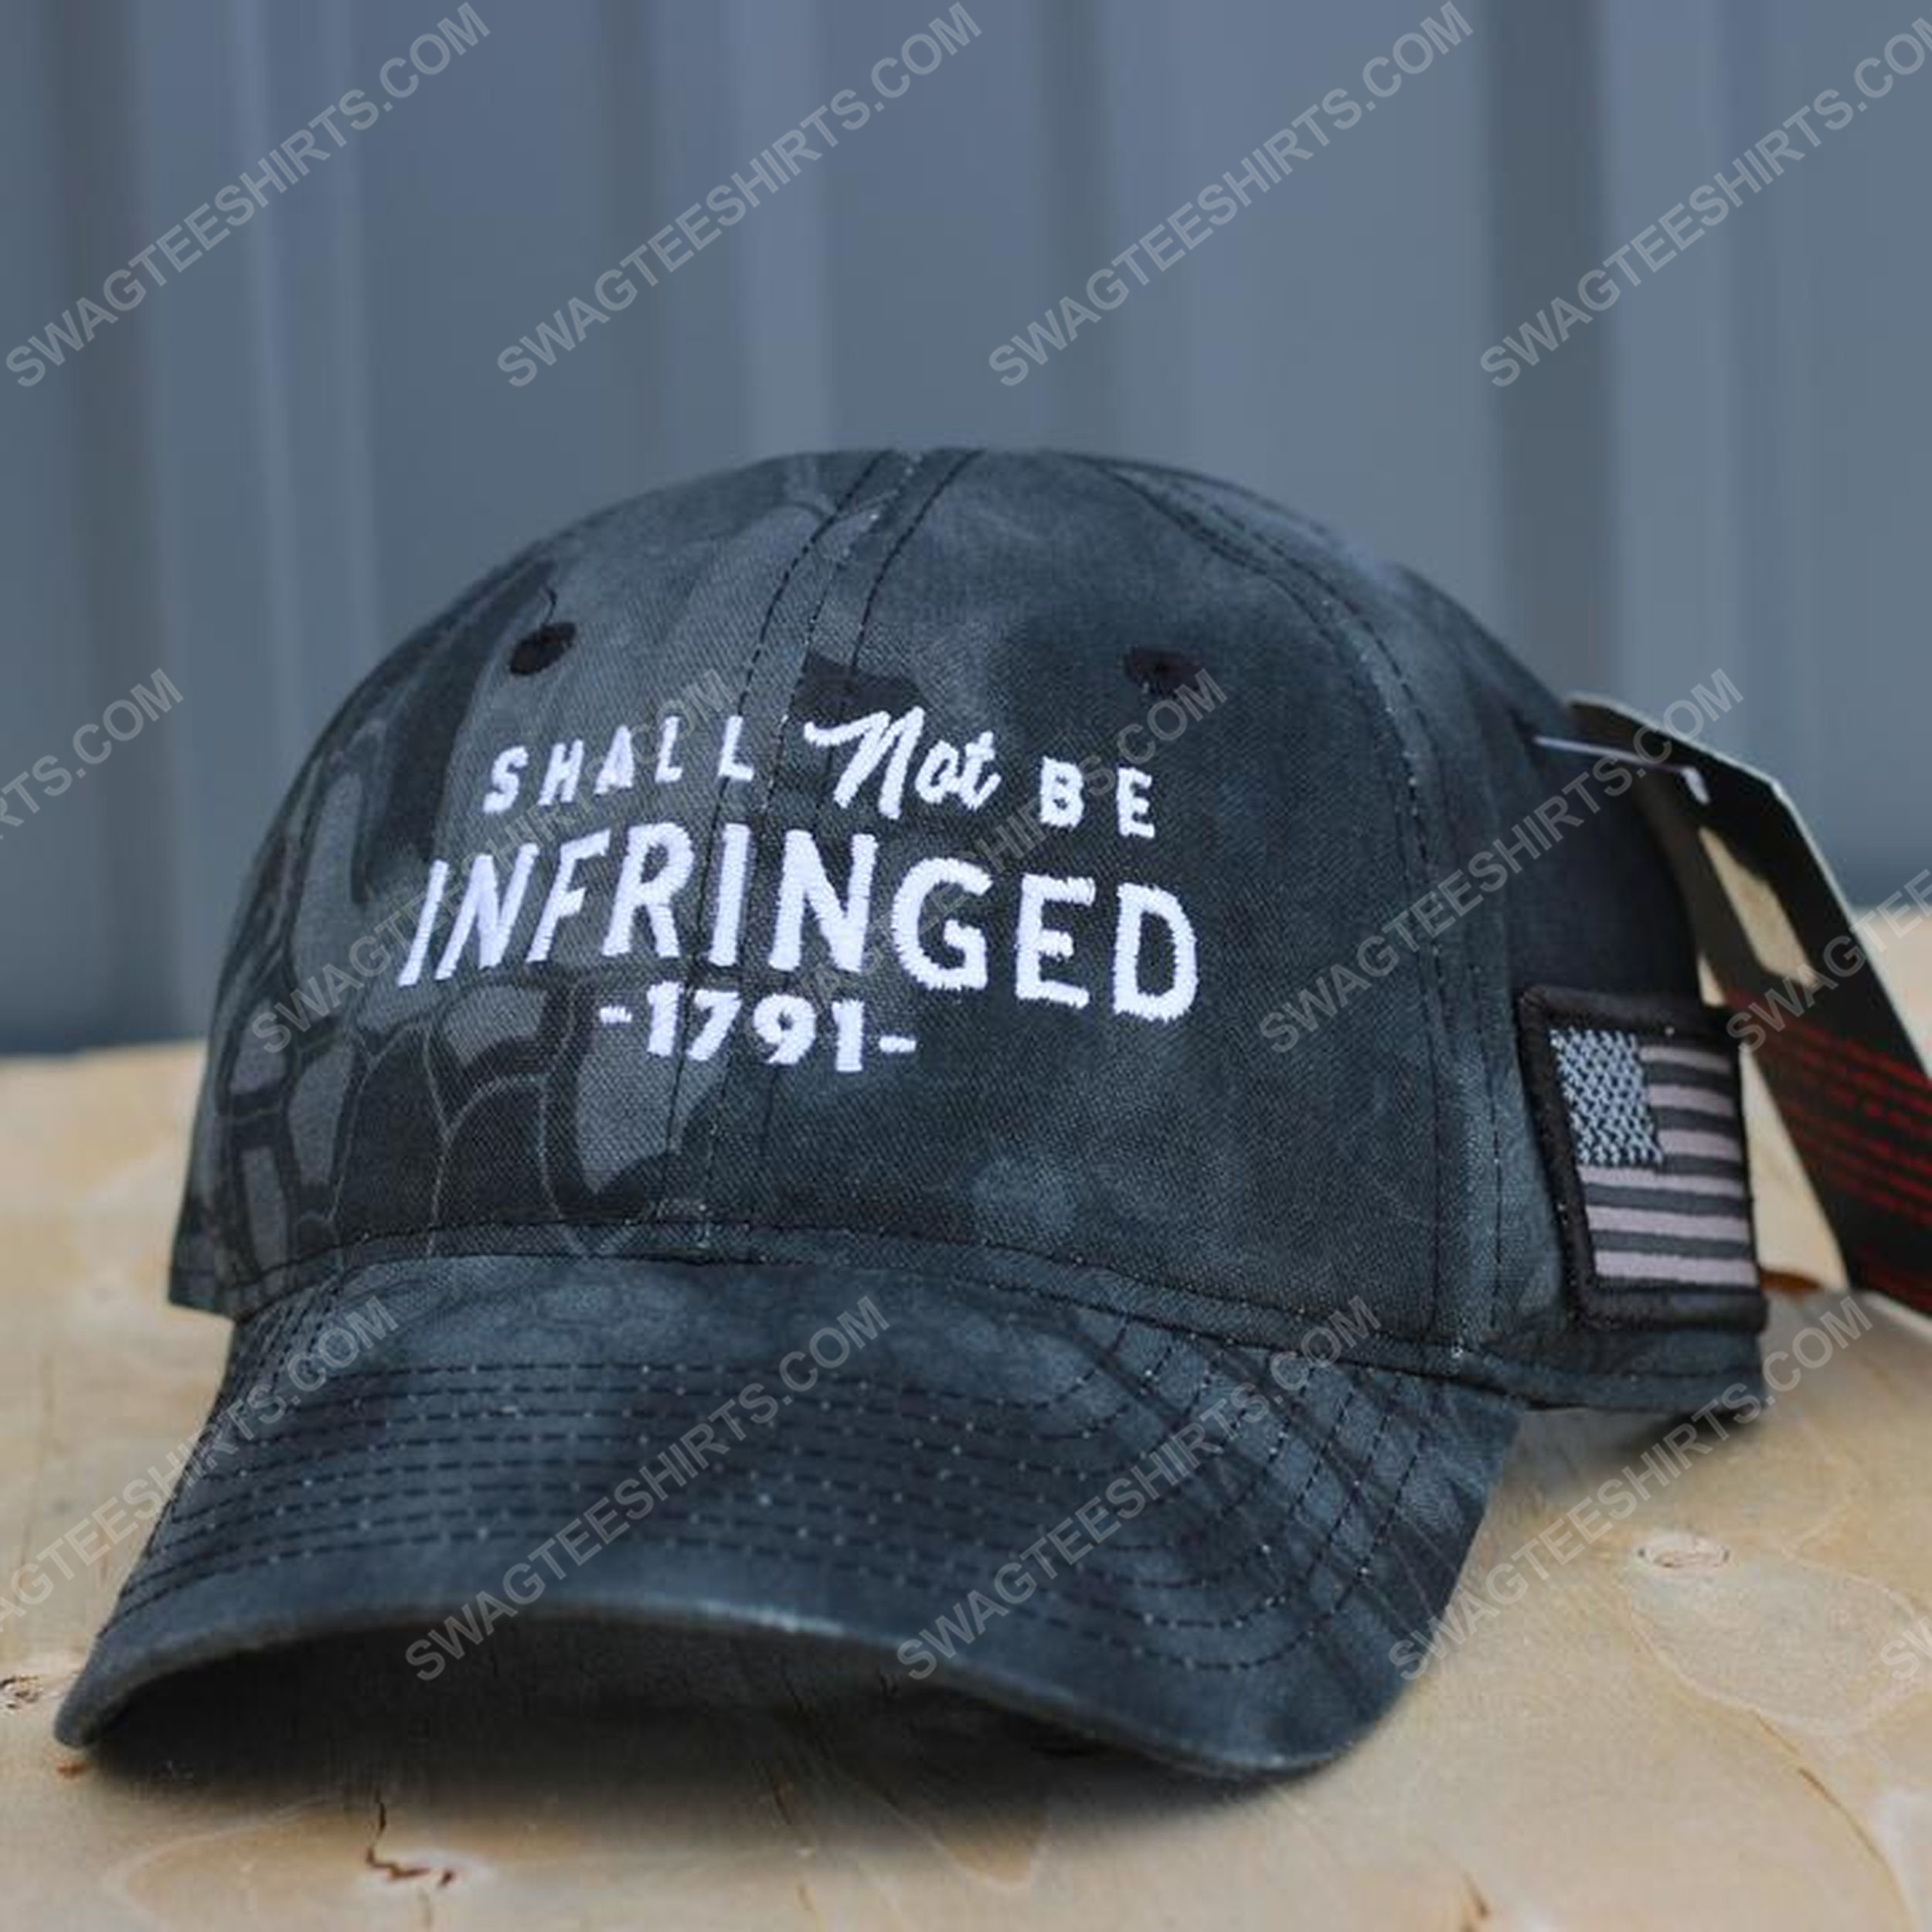 Shall not be infringed full print classic hat 1 - Copy